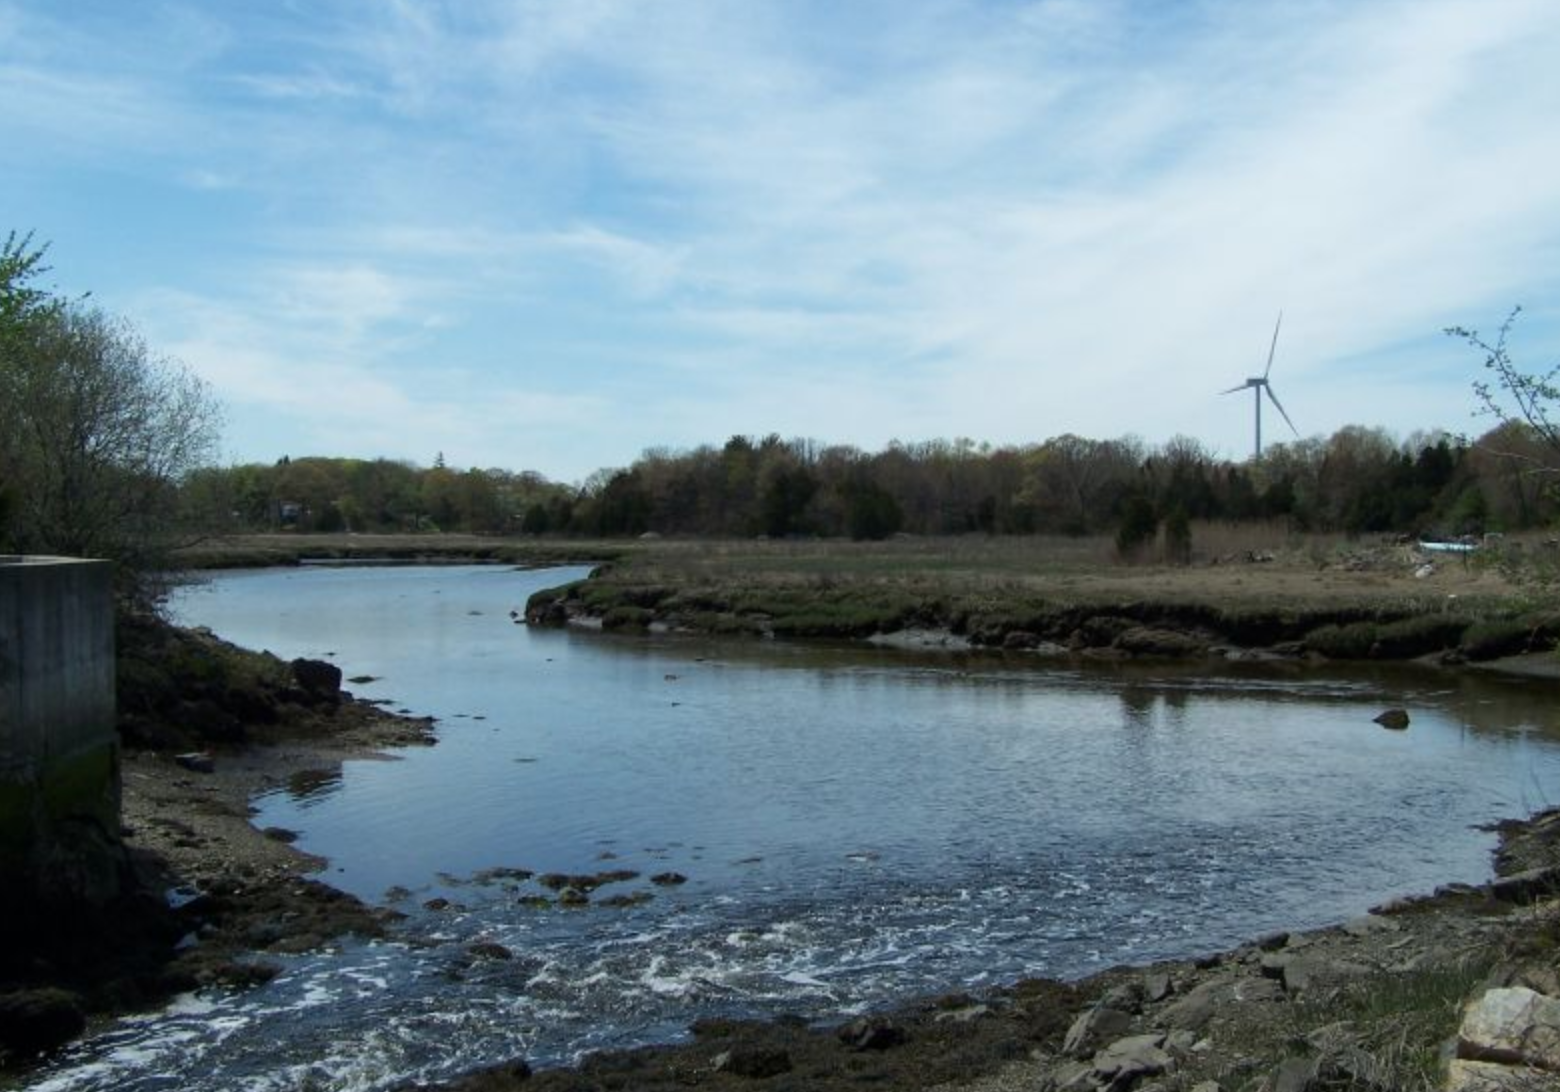 The Weir River in Hingham.